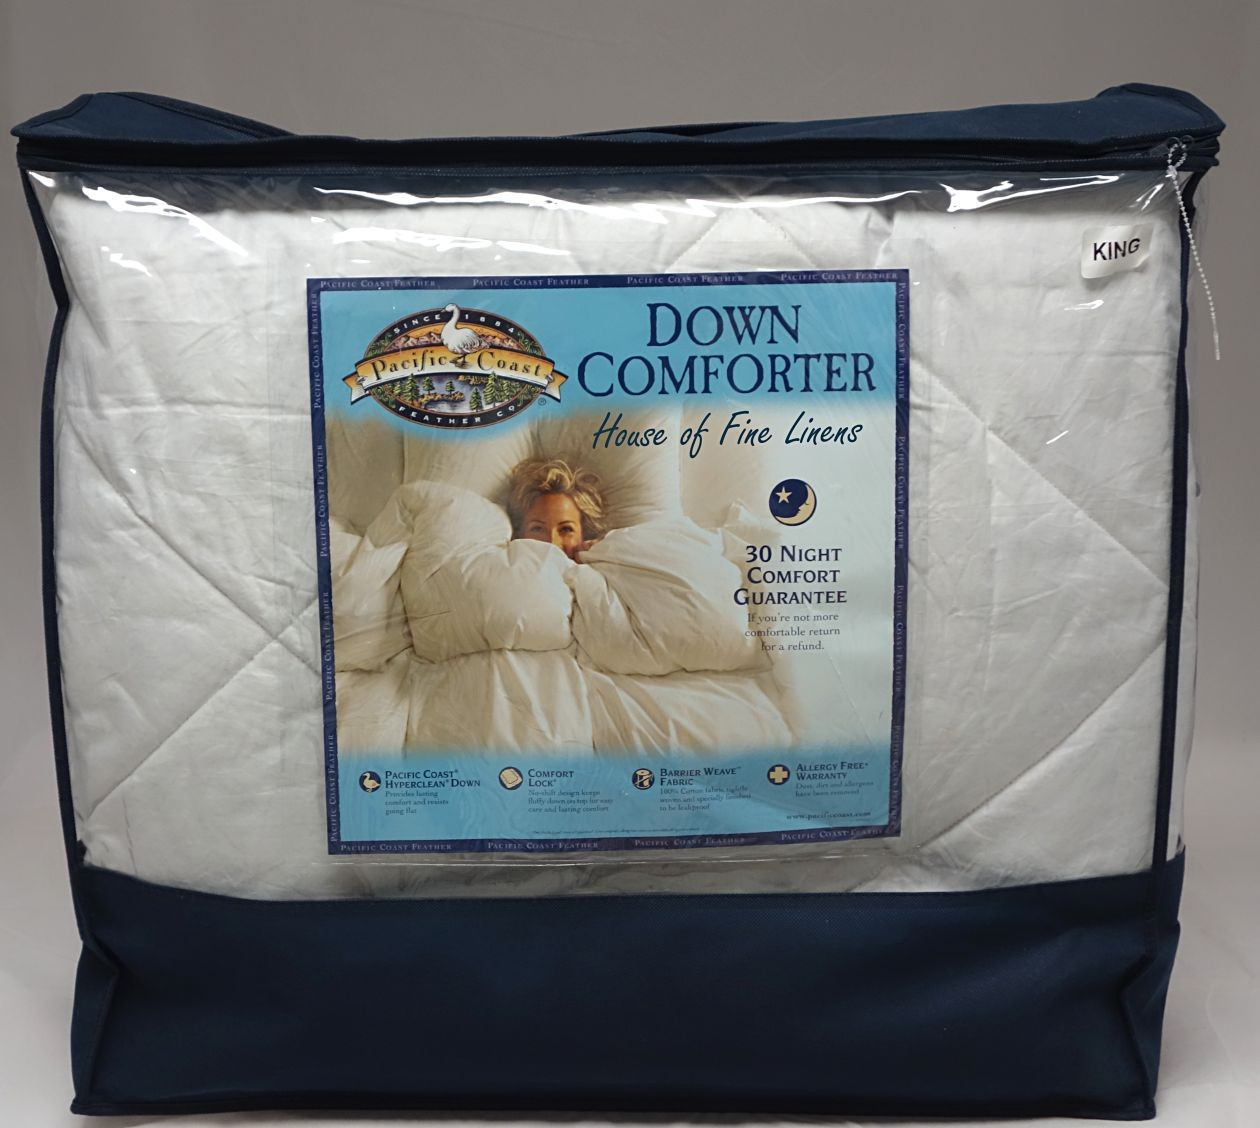 duvet cotton and queen down white coral set crane target comforter navy using canopy pink ikea blue duvets for review bedroom ideas cover decoration pintuck pastel gorgeous champagne